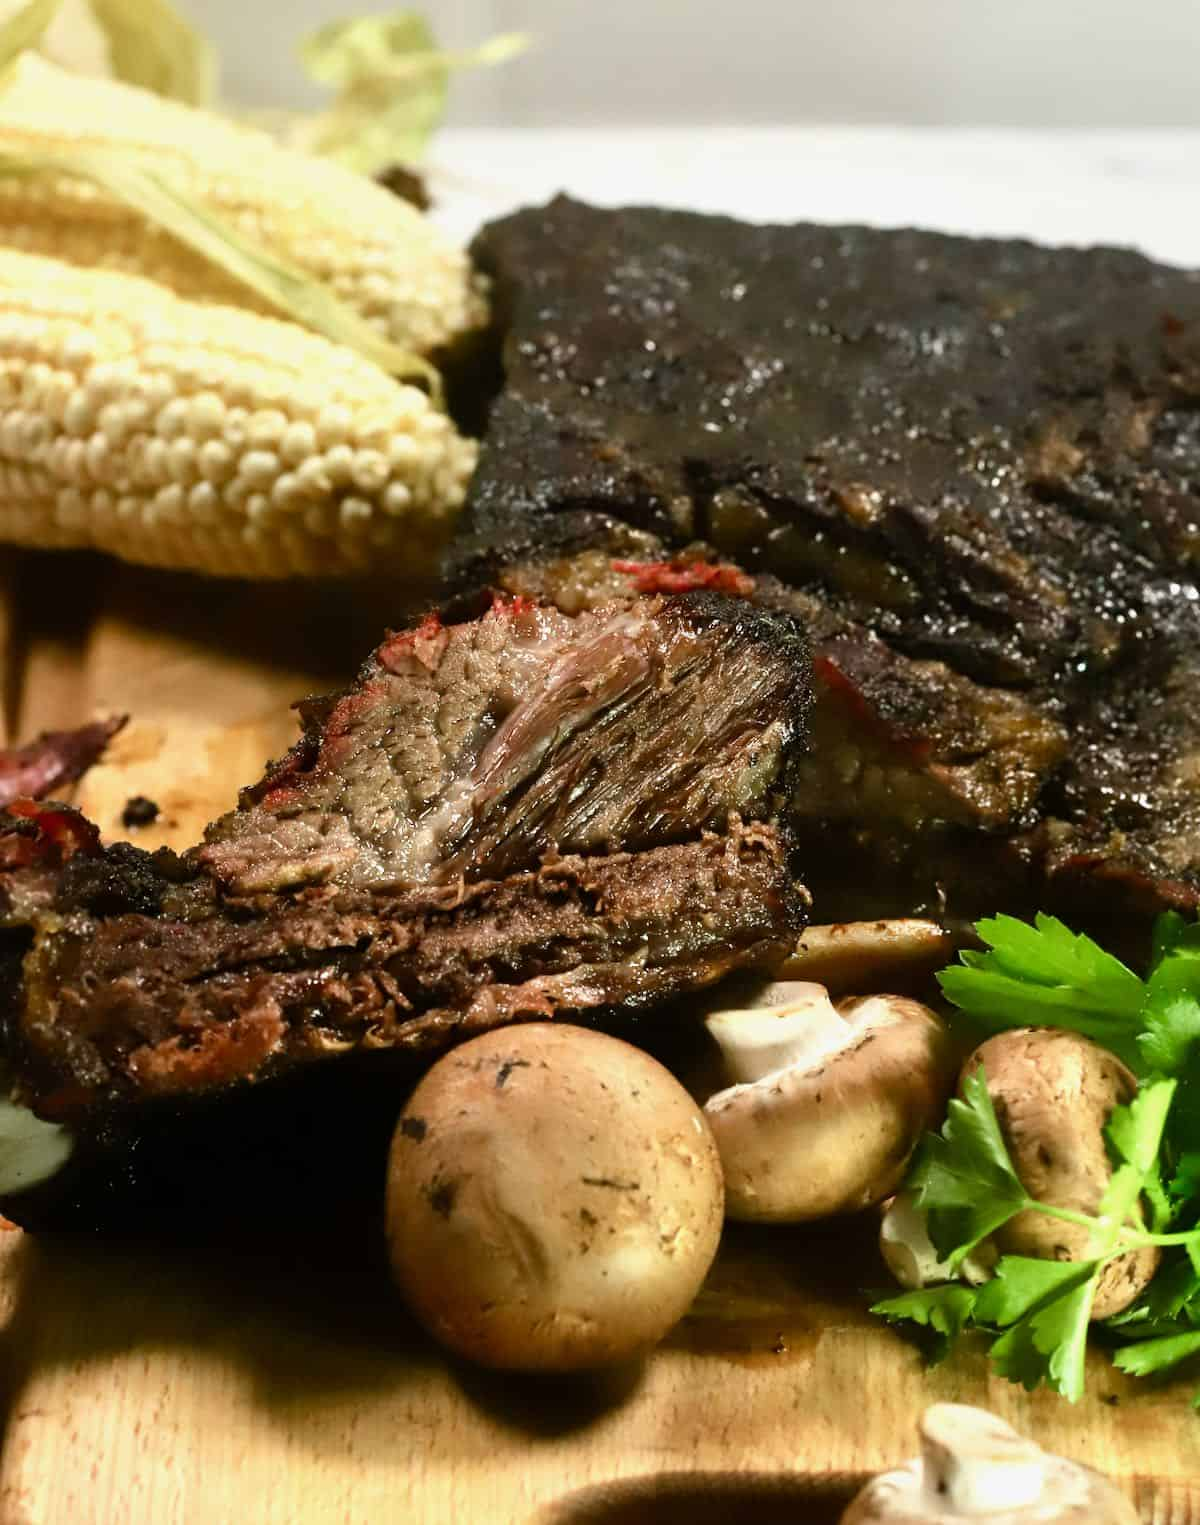 Smoked Beef Short Ribs on a cutting board with corn.